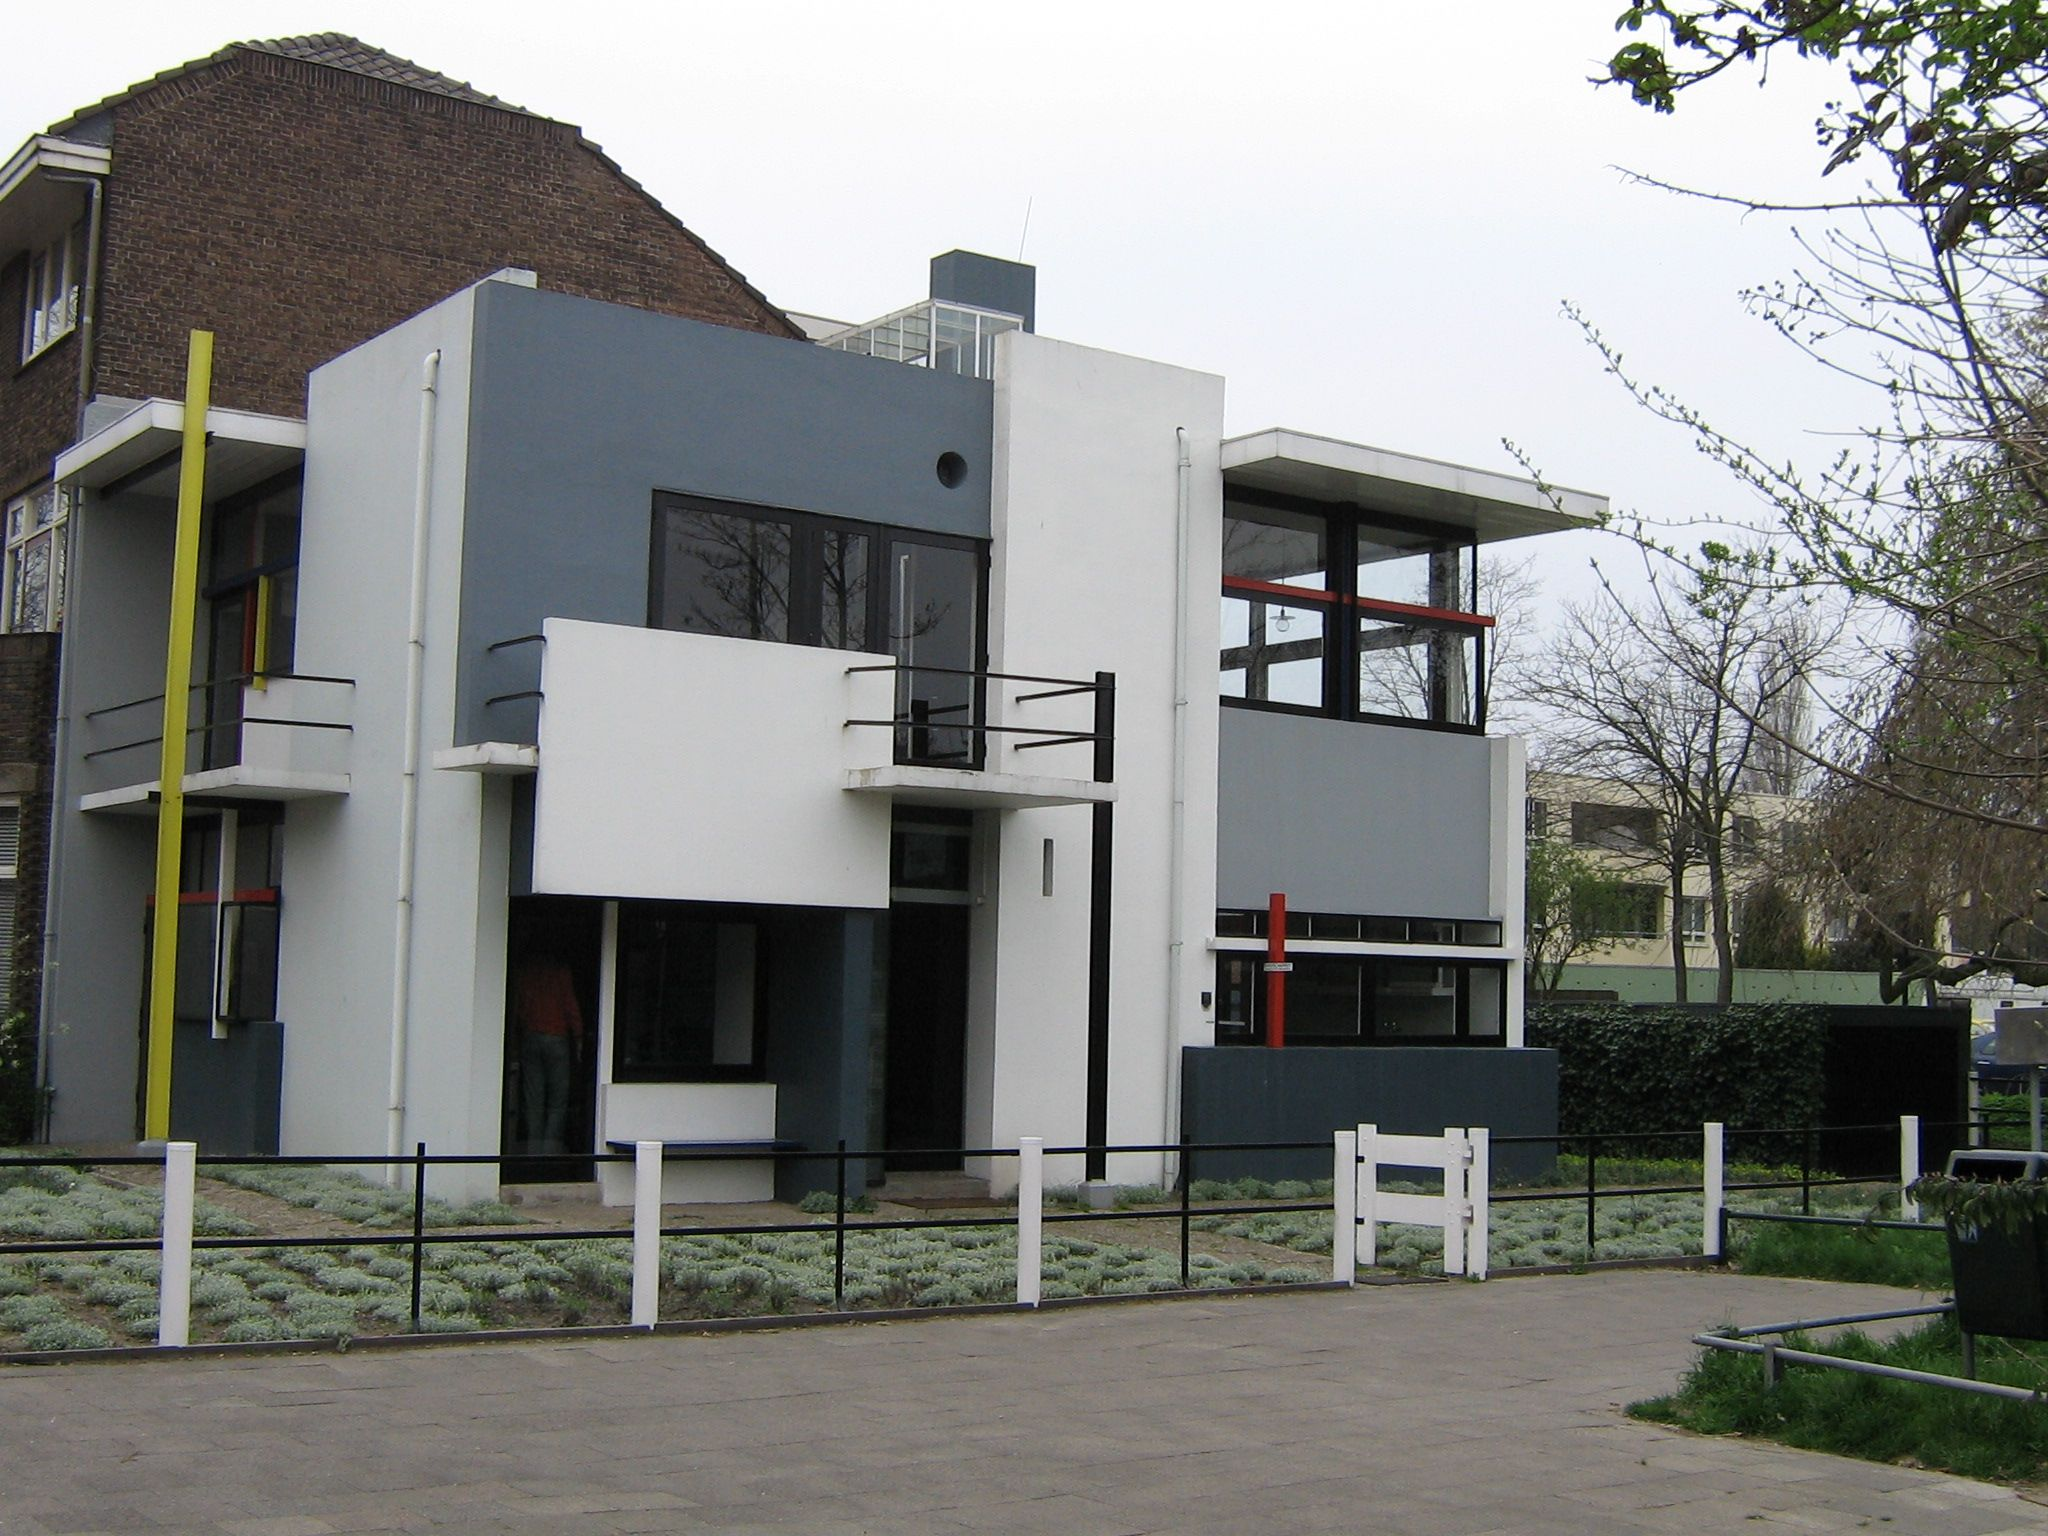 The Rietveld Schröder House—the only building realised completely according to the principles of De Stijl